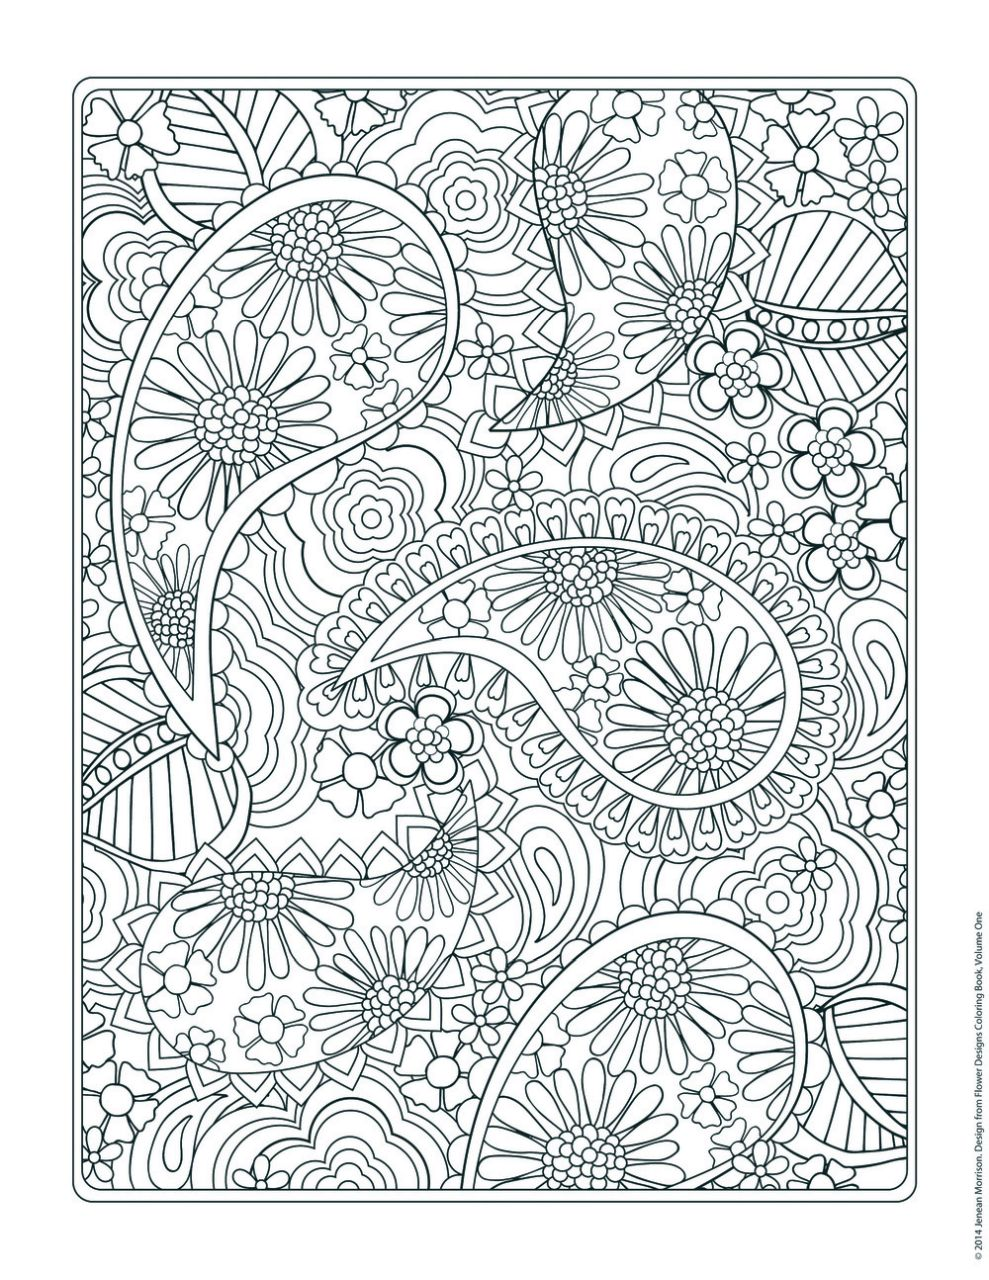 Flower-Design-Coloring-Pages-09790